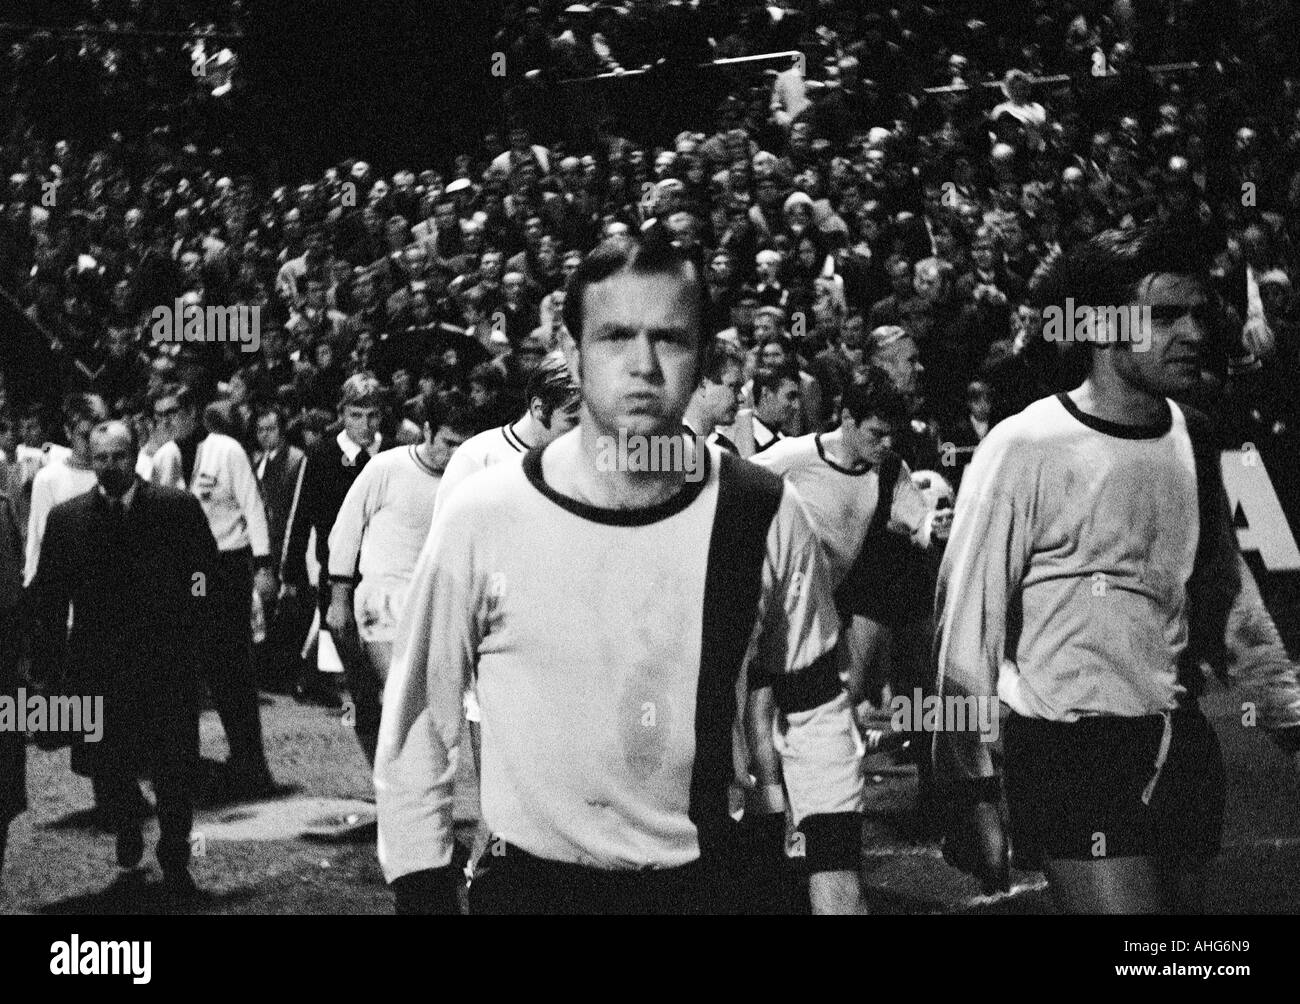 football, Bundesliga, 1969/1970, Borussia Moenchengladbach versus Alemannia Aix-La-Chapelle 5:1, Boekelberg Stadium, football players come in the stadium, ahead Erwin Hoffmann (Aachen) links and Rolf Pawellek (Aachen) rechts - Stock Image